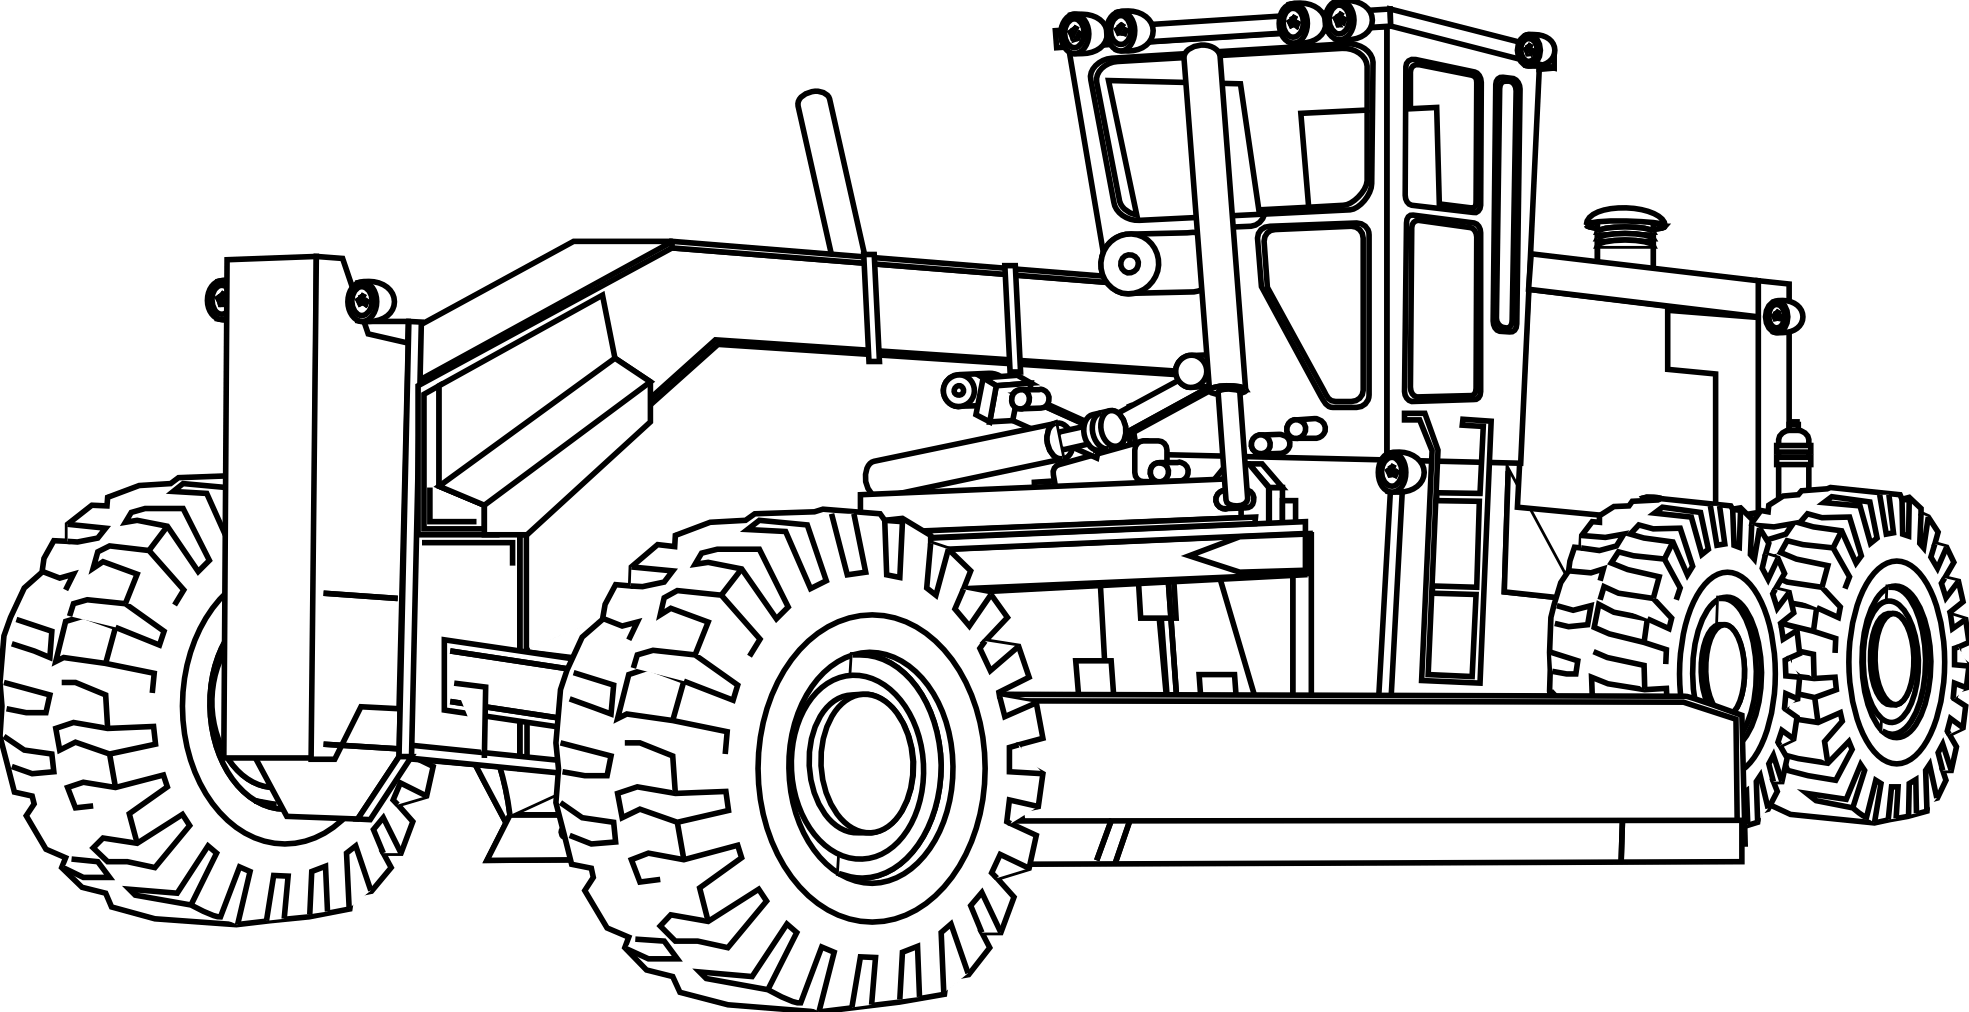 Printable Pictures Of Construction Equipment